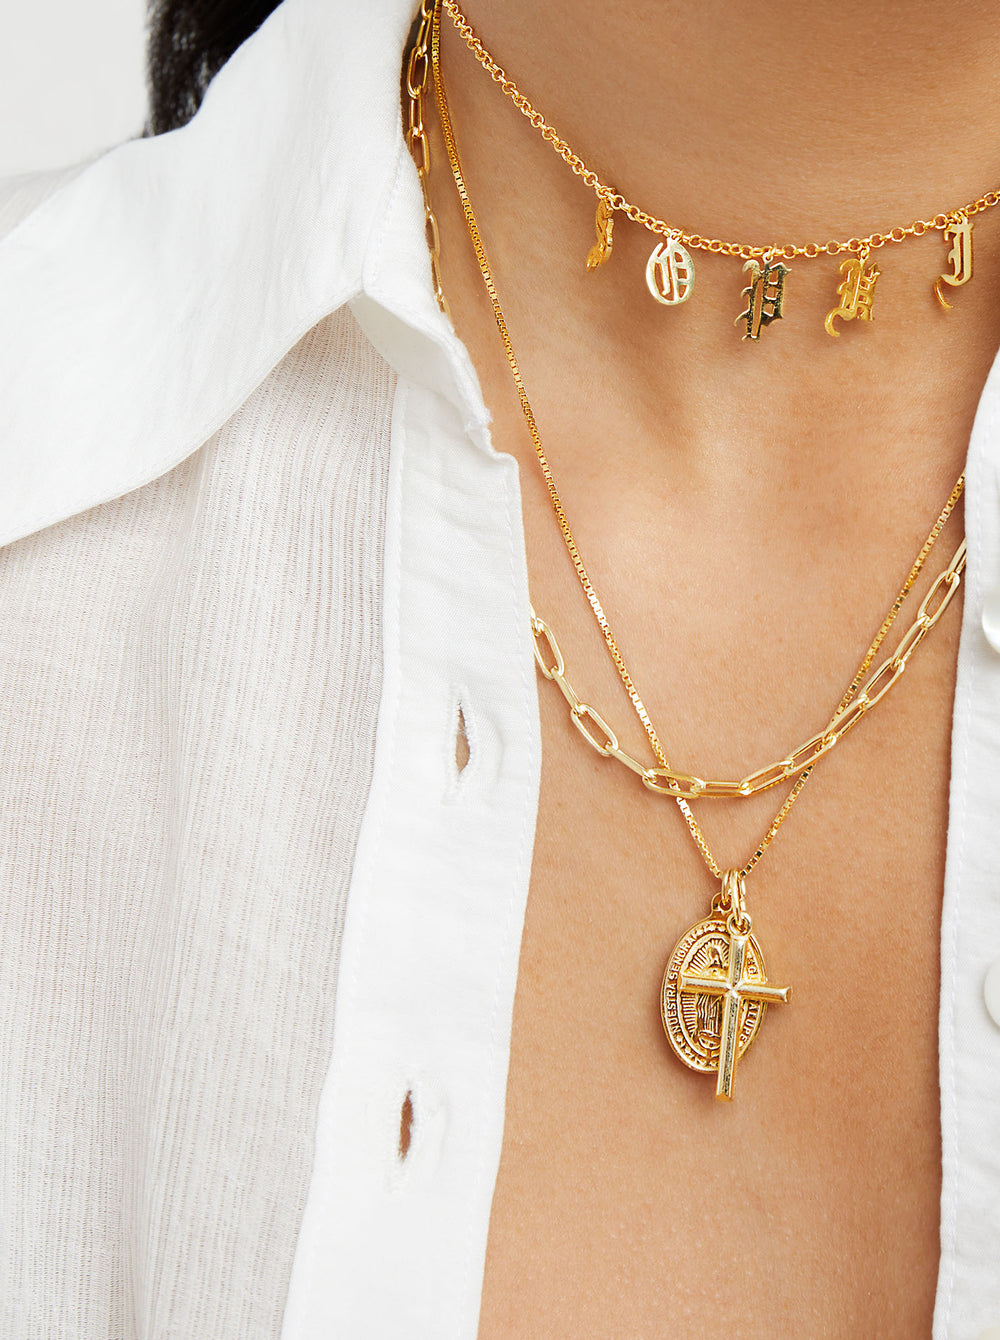 THE GUADALUPE CROSS NECKLACE